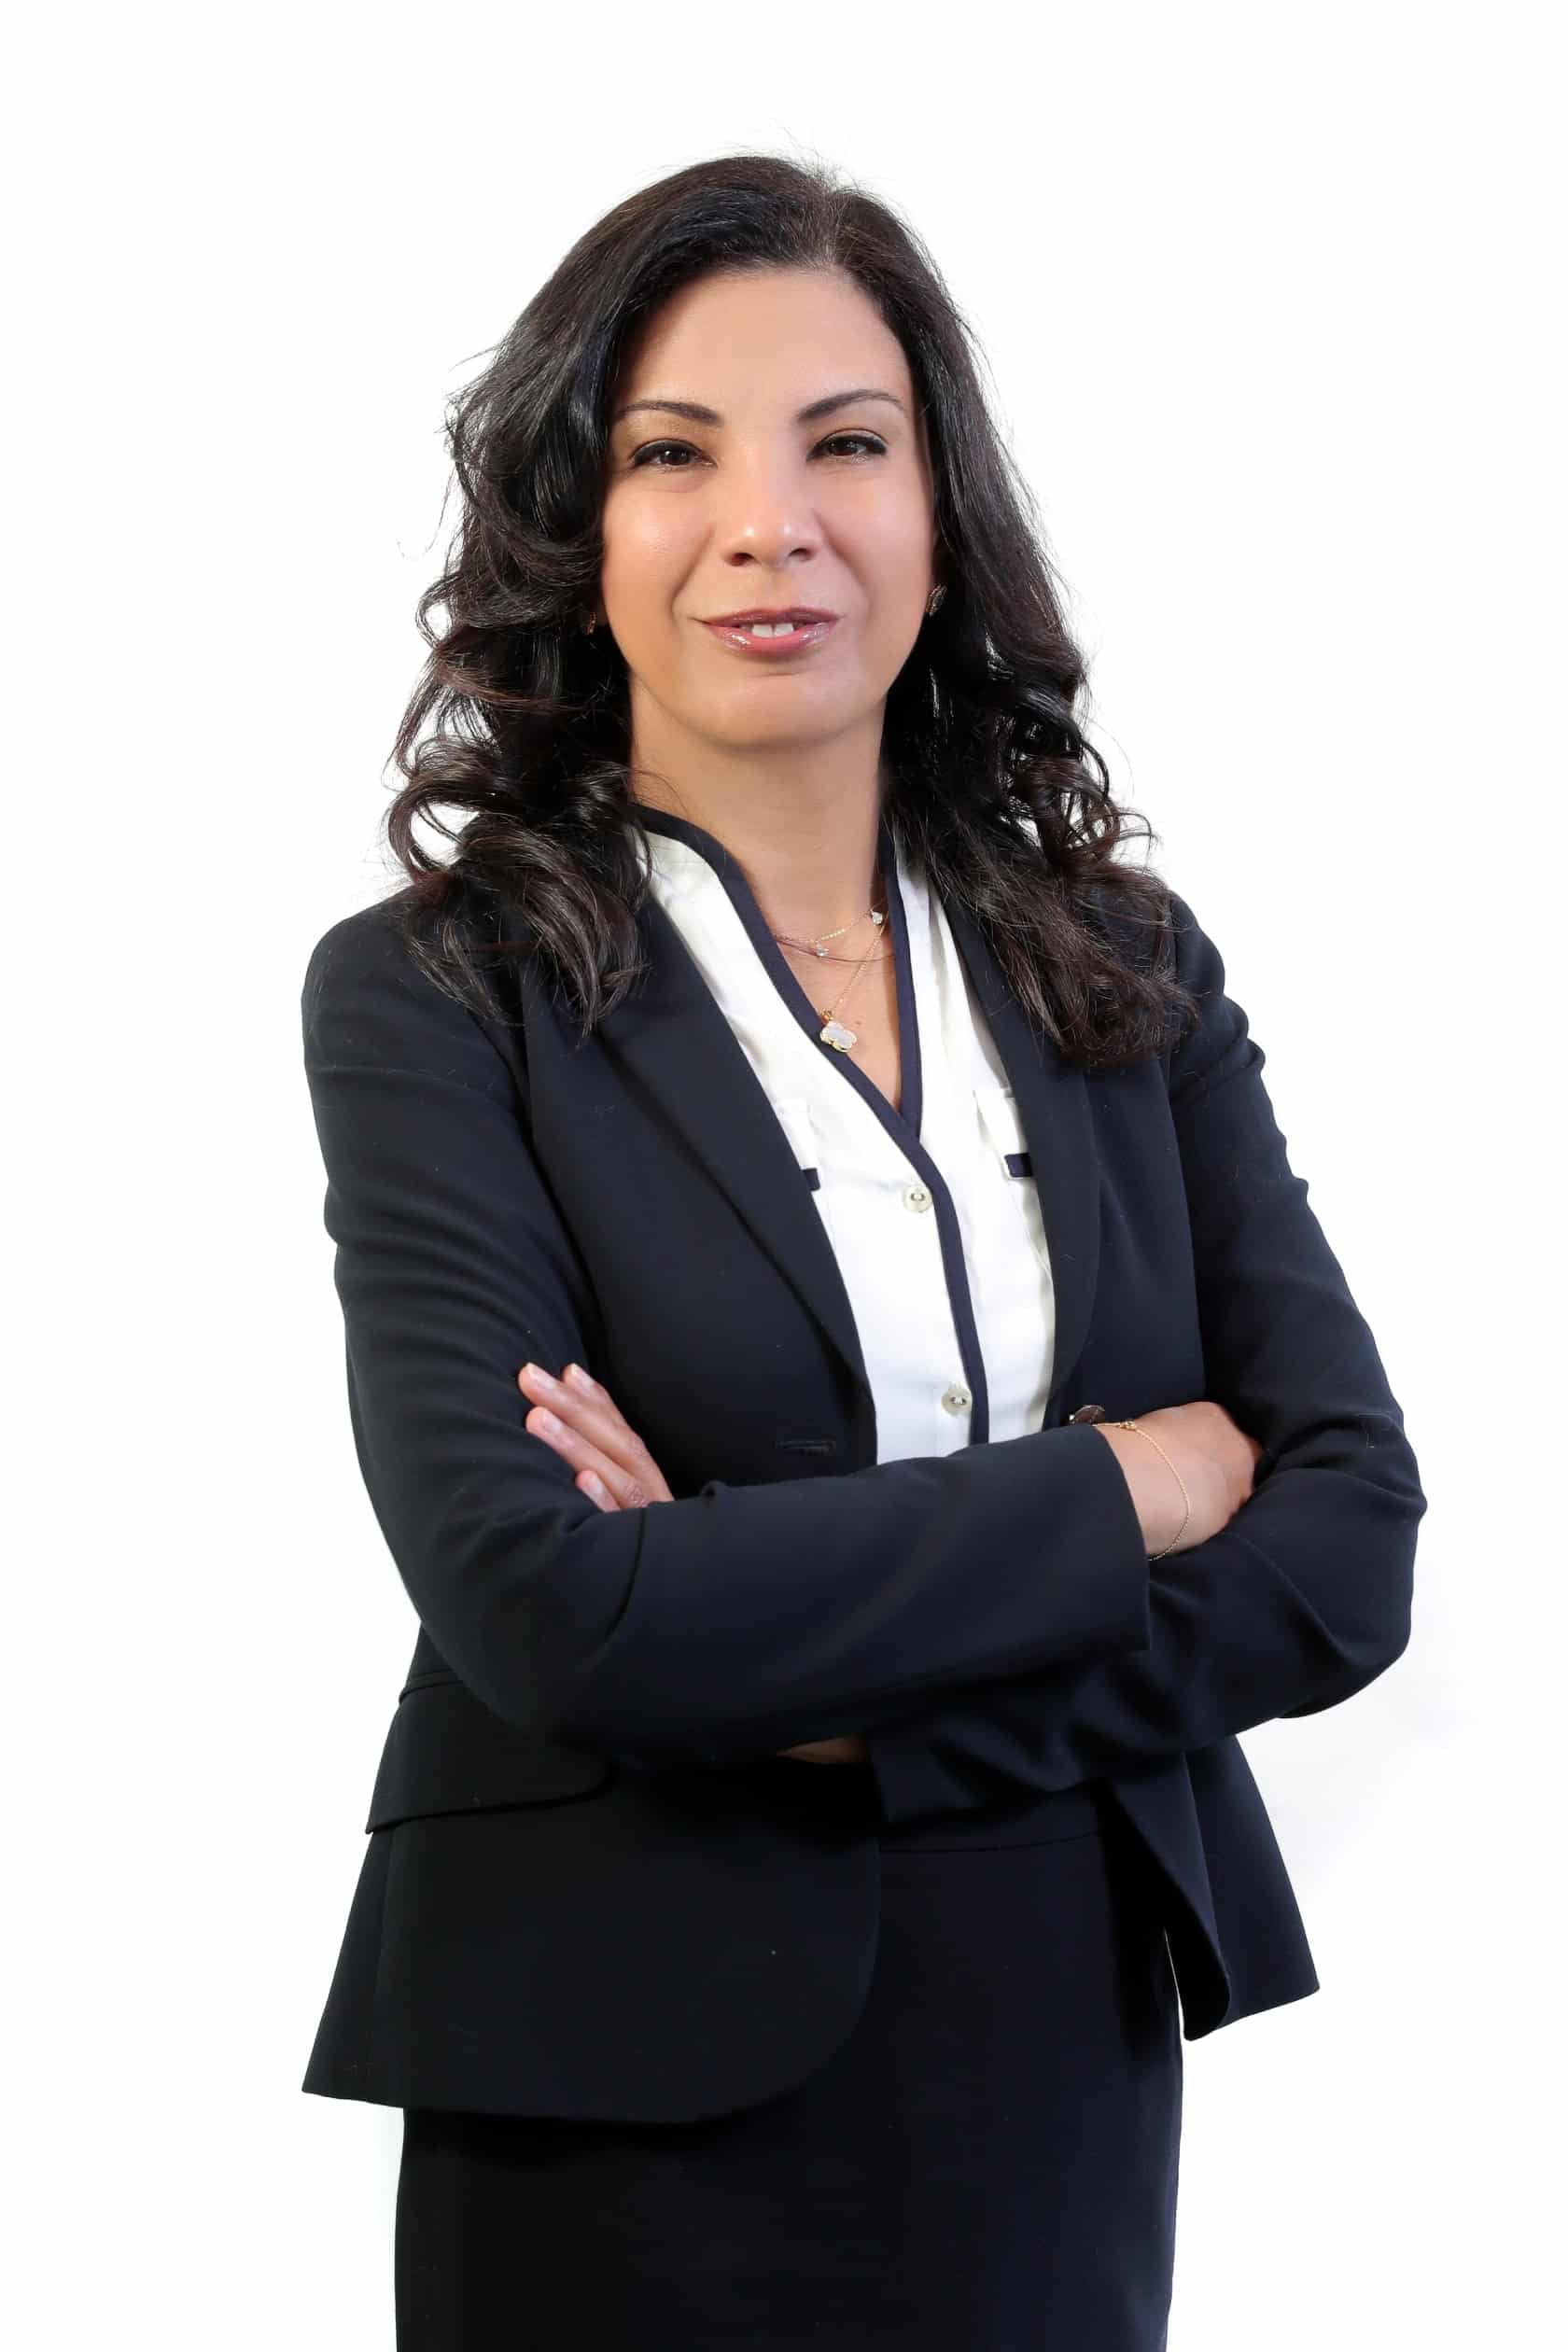 Dr. Inas Mikhail